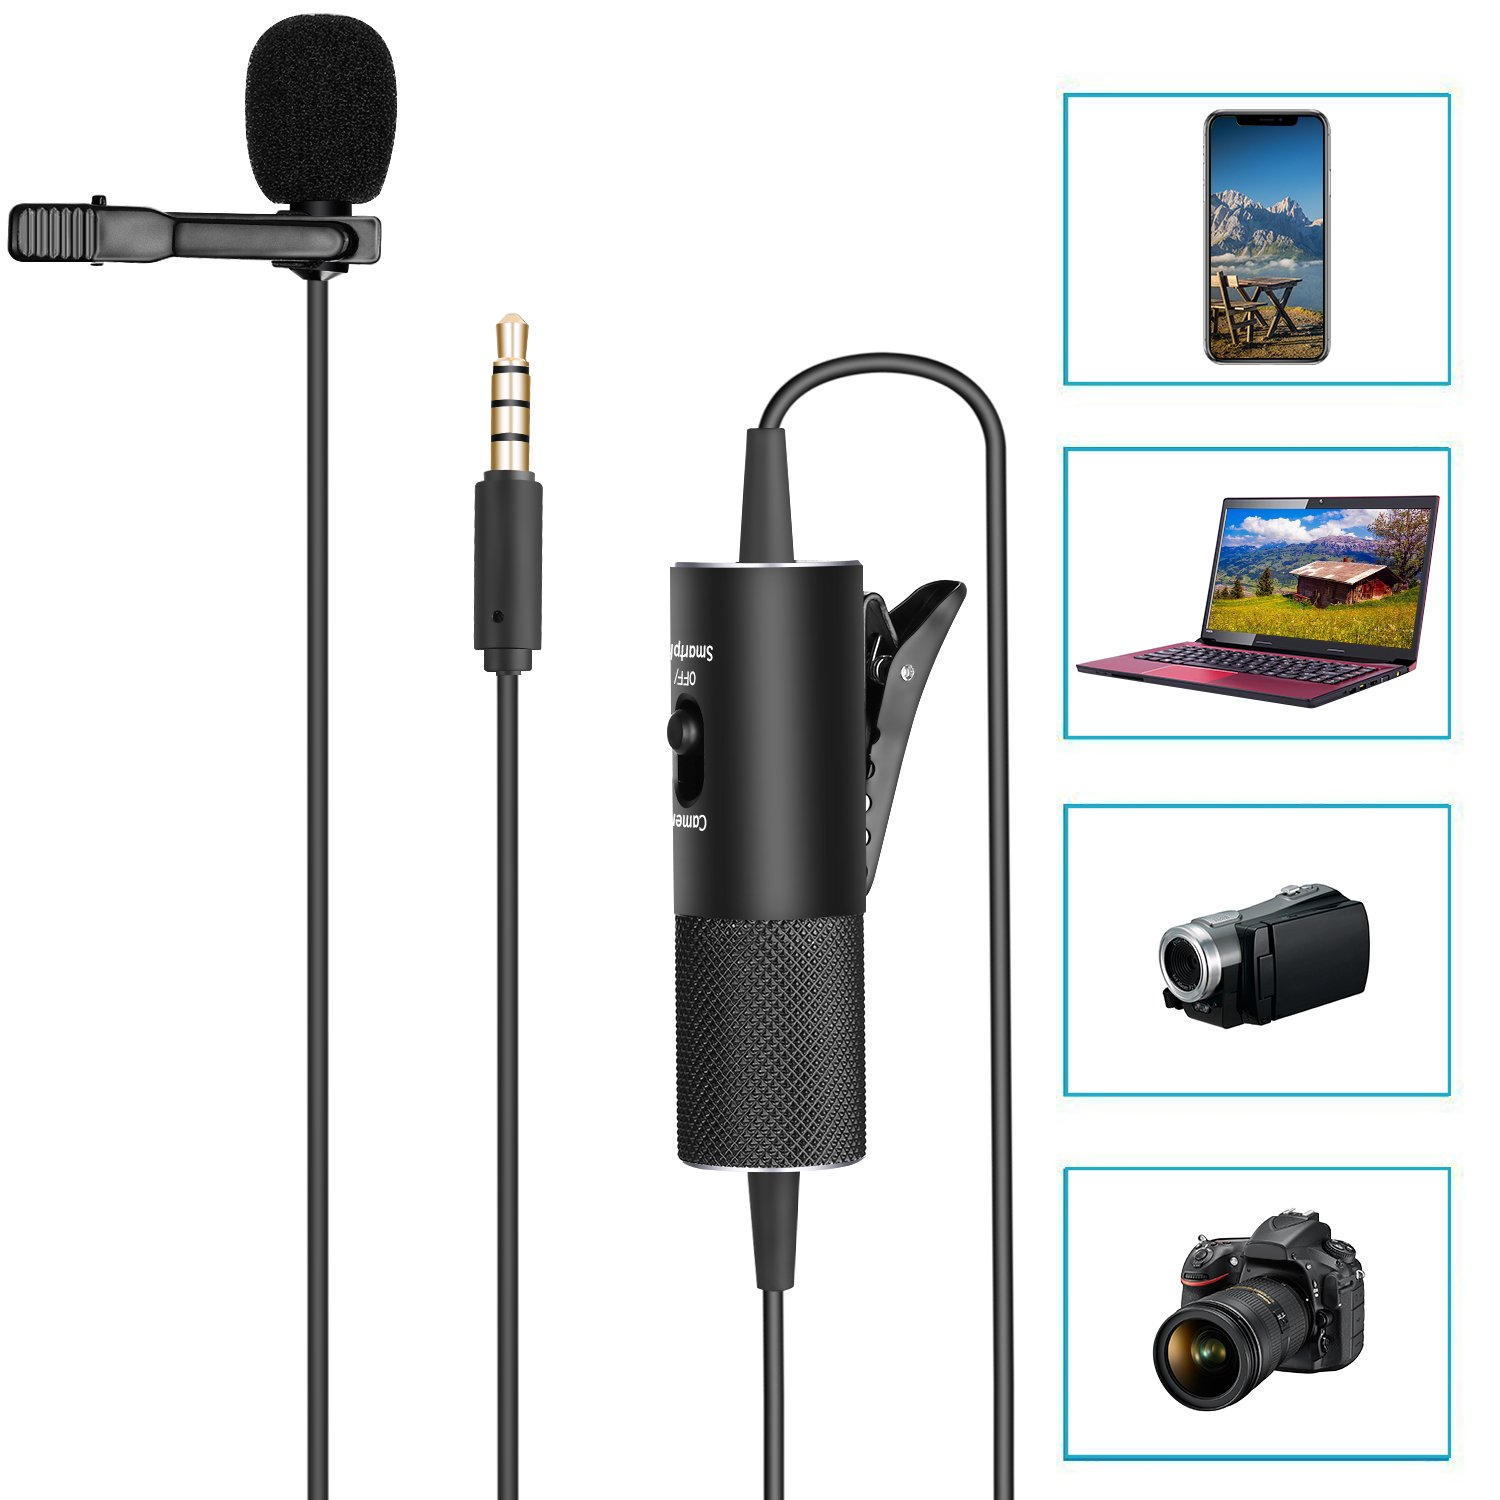 Neewer Dual Lavalier Microphone, Hands Free Clip-on Lapel Microphone with Omni-directional Condenser,3.5mm Interface for DSLR Camera,iPhone,Android,Samsung,Sony,PC,Laptop,224 inches/18.7 feet(NW-955S)